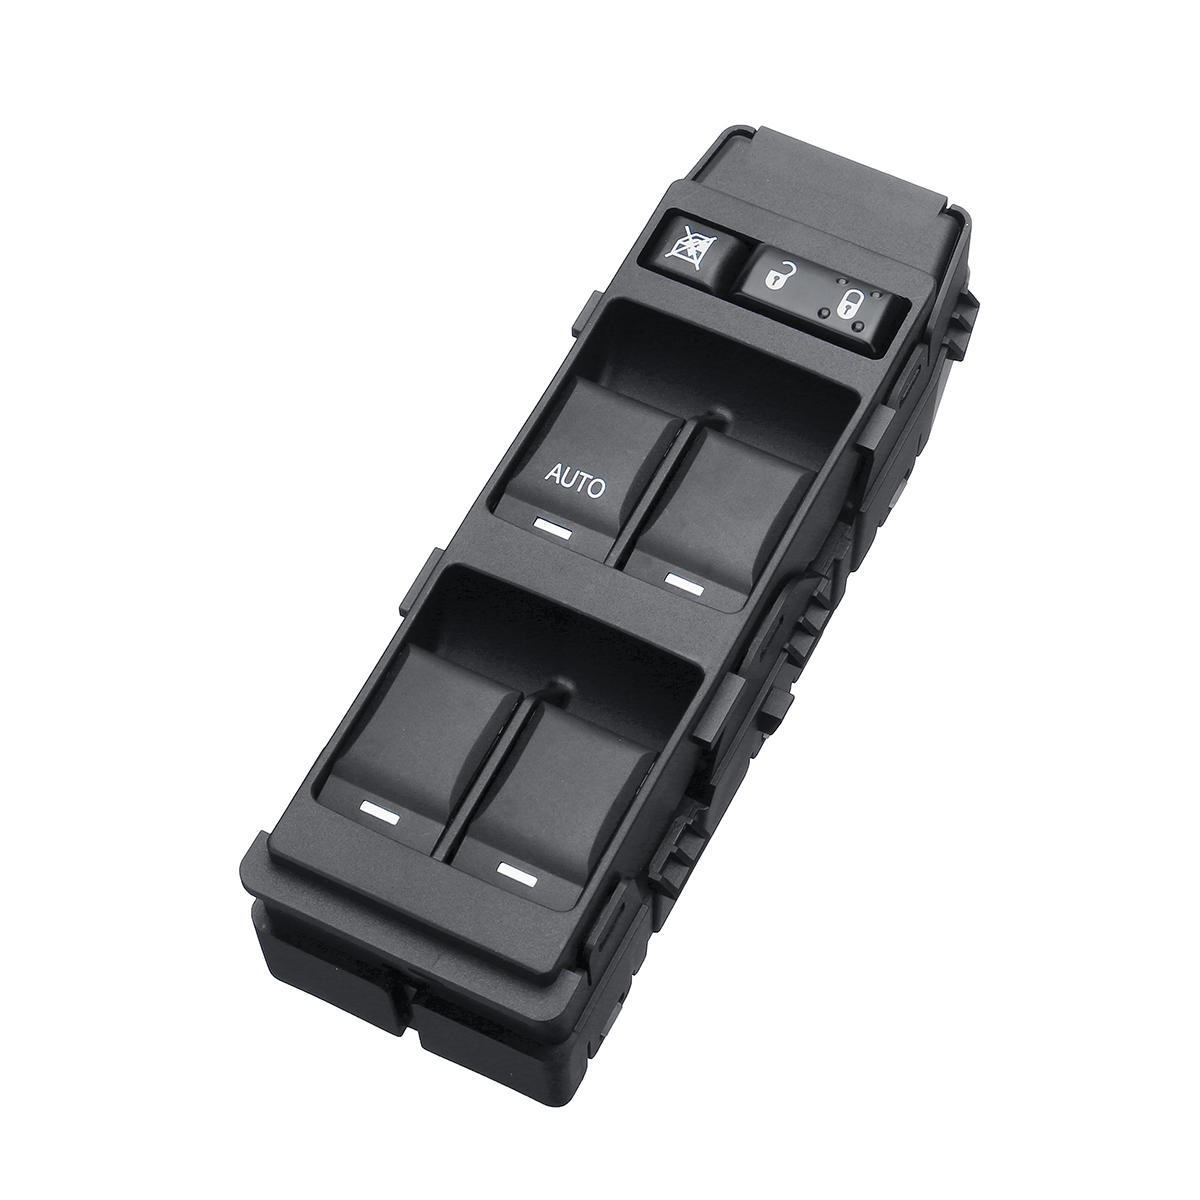 New Power Master Window Switch for 2010 Jeep Compass Patriot  Dodge Caliber